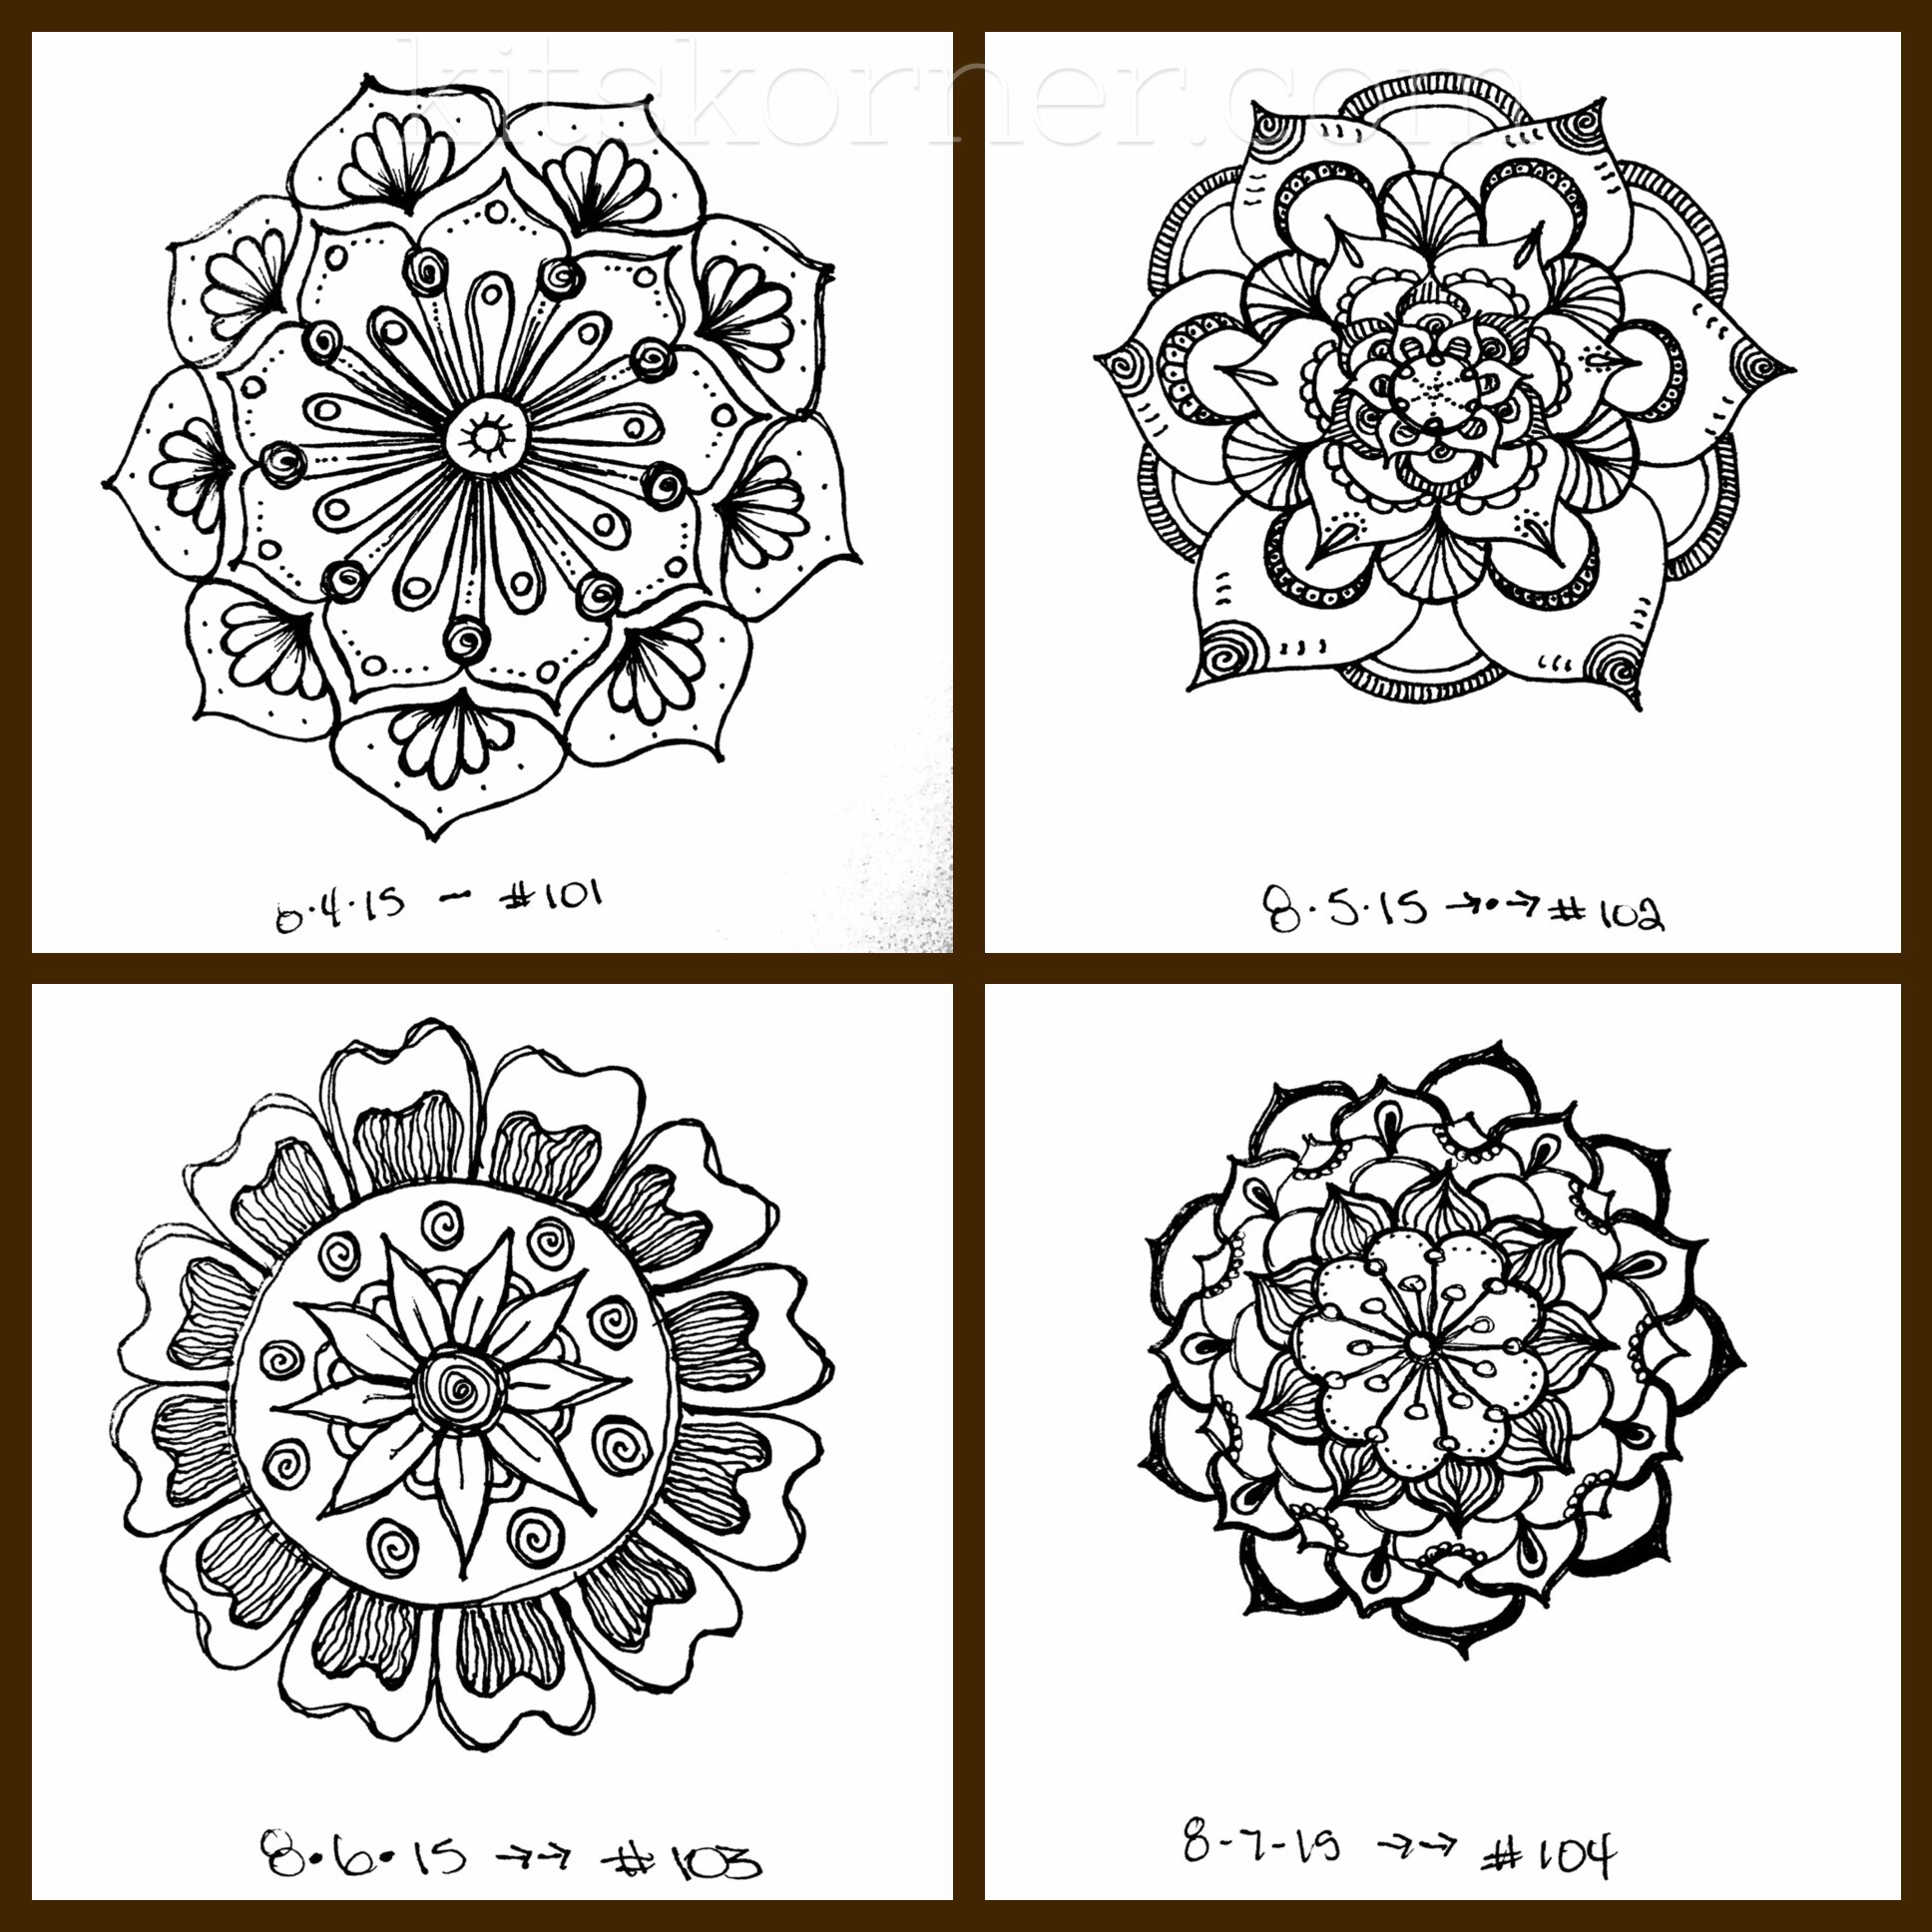 Sketchbook : Beyond 100 Mandalas